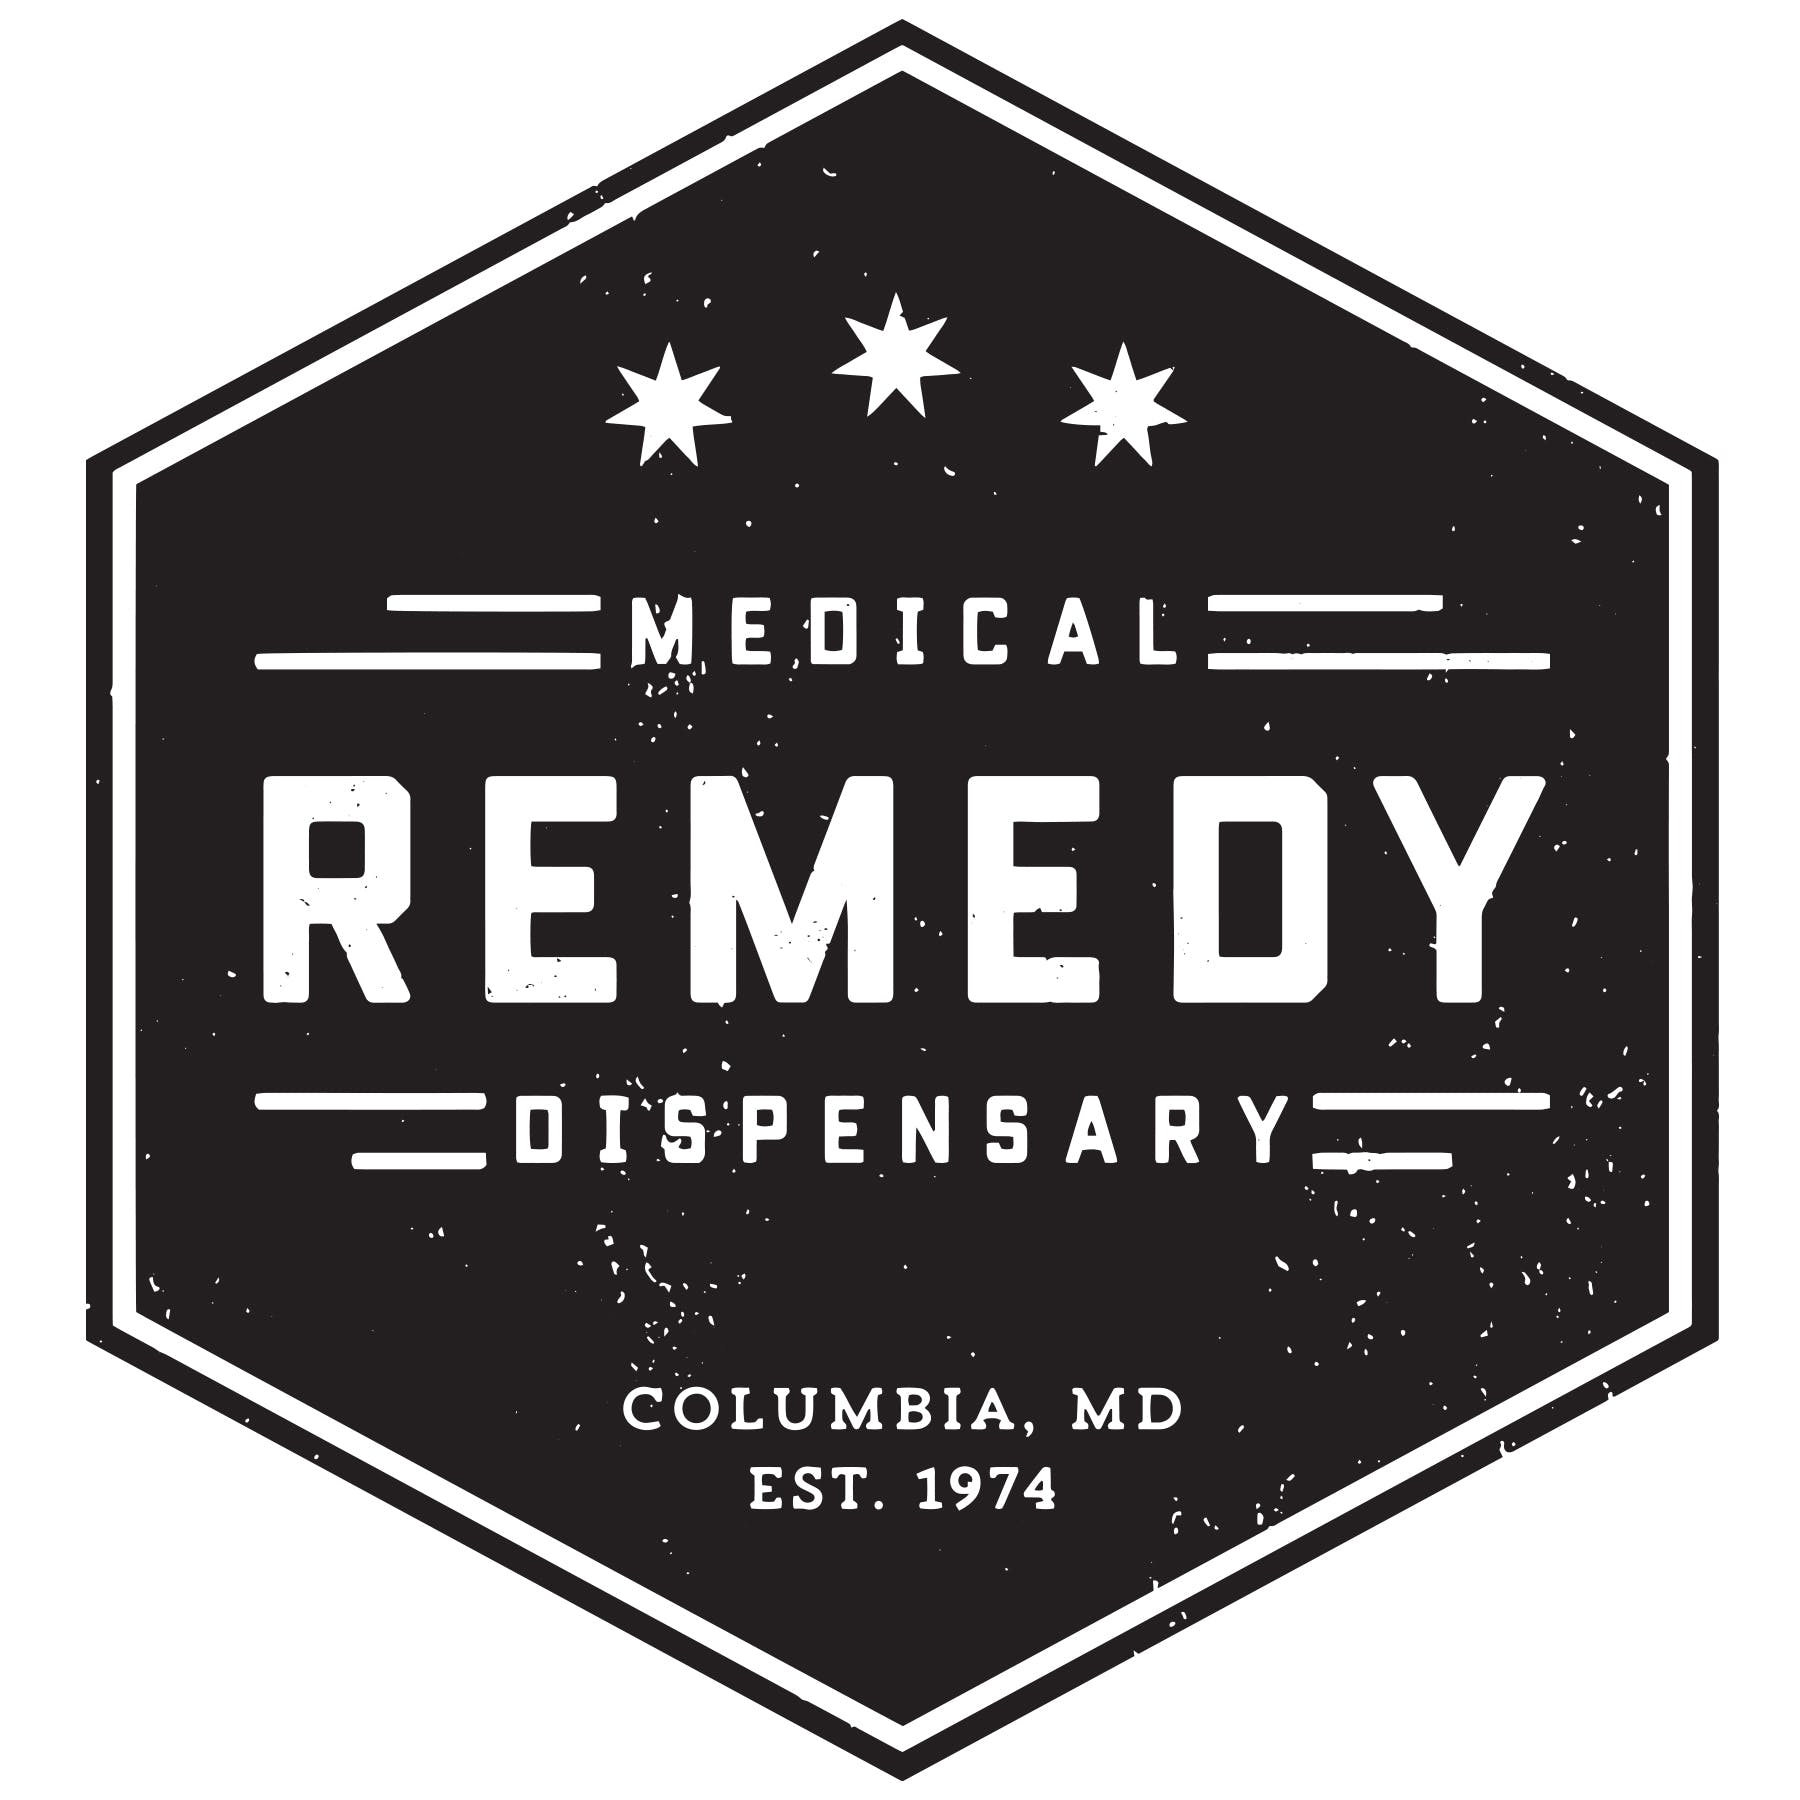 Remedy Columbia - Medical Marijuana Doctors - Cannabizme.com